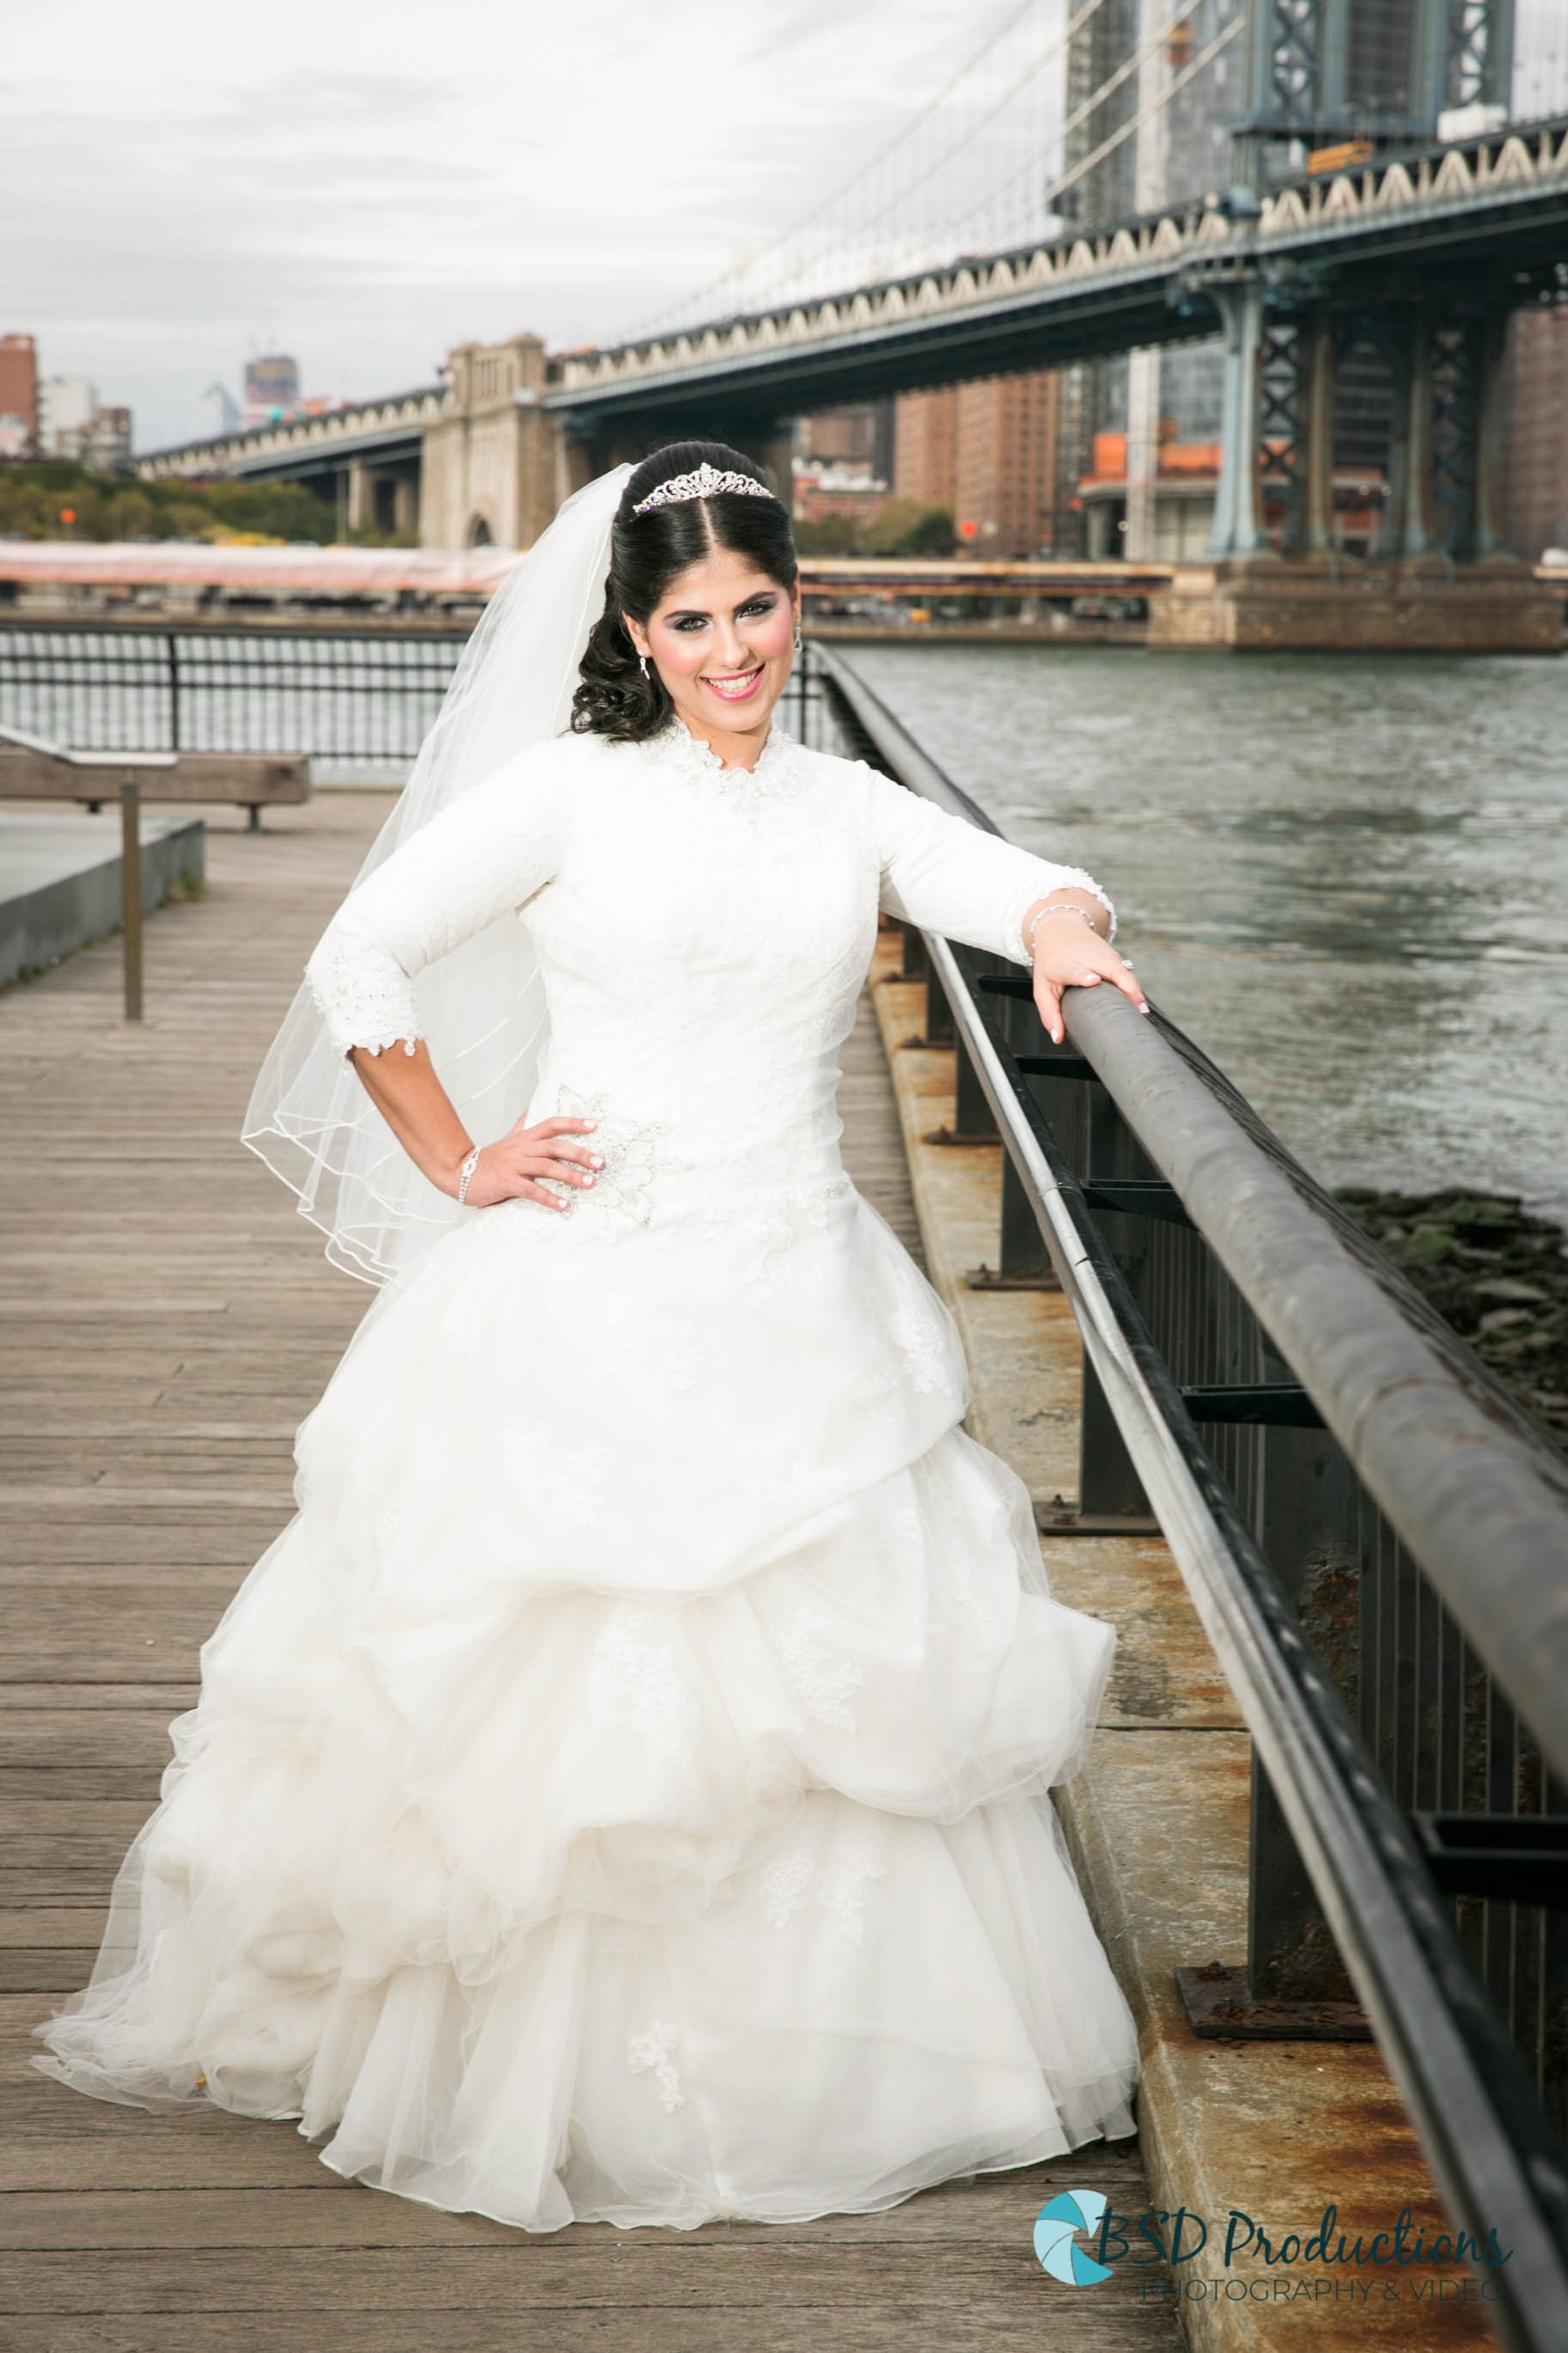 UH5A0048 Wedding – BSD Productions Photography